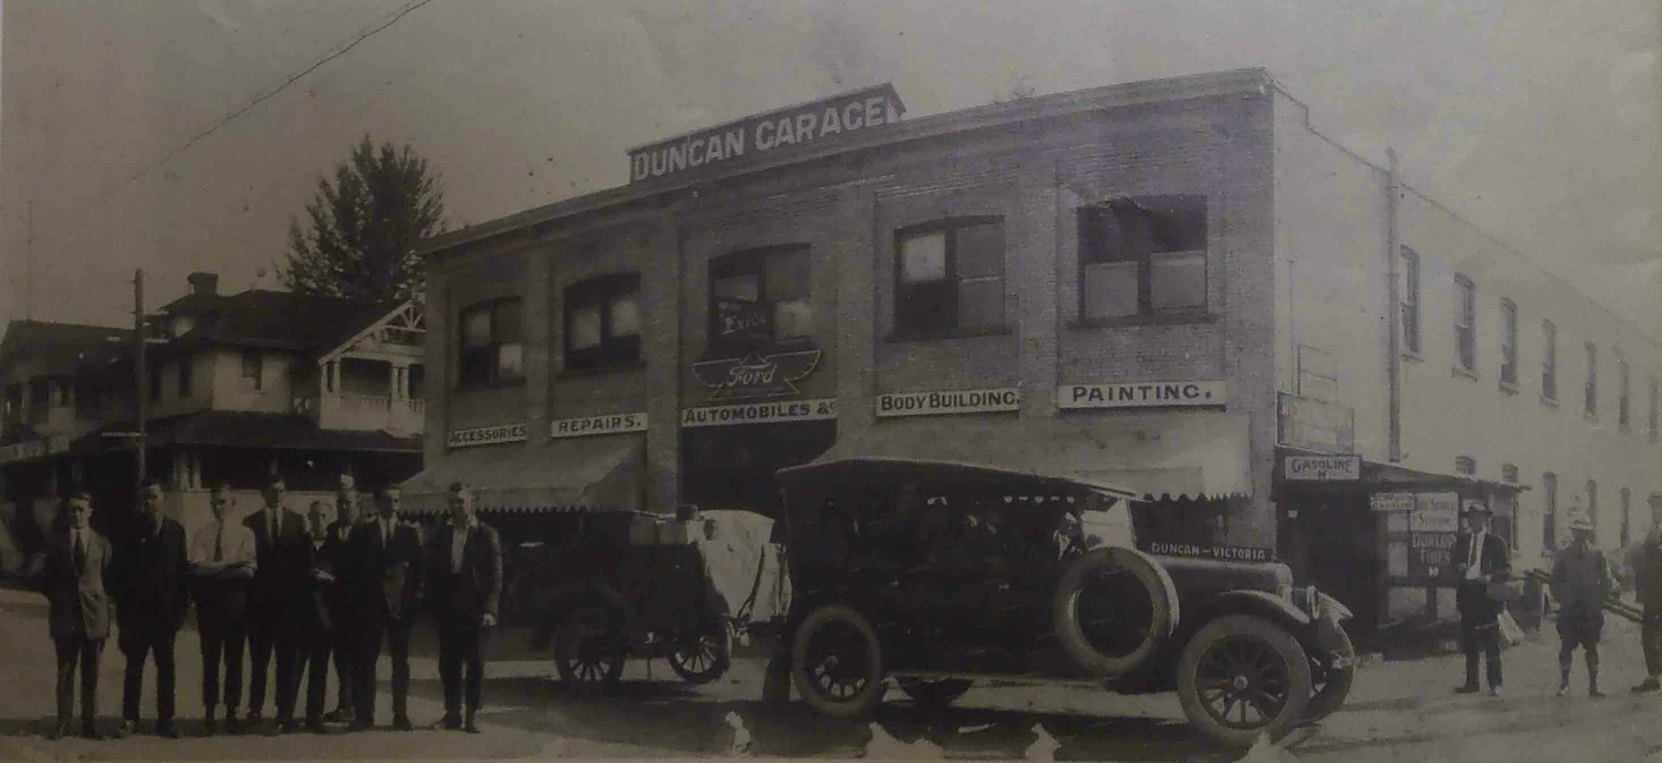 Duncan Garage, circa 1921. The car in the photo is the Duncan to Victoria bus service operated by Duncan Garage. Note the trailer behind the car.